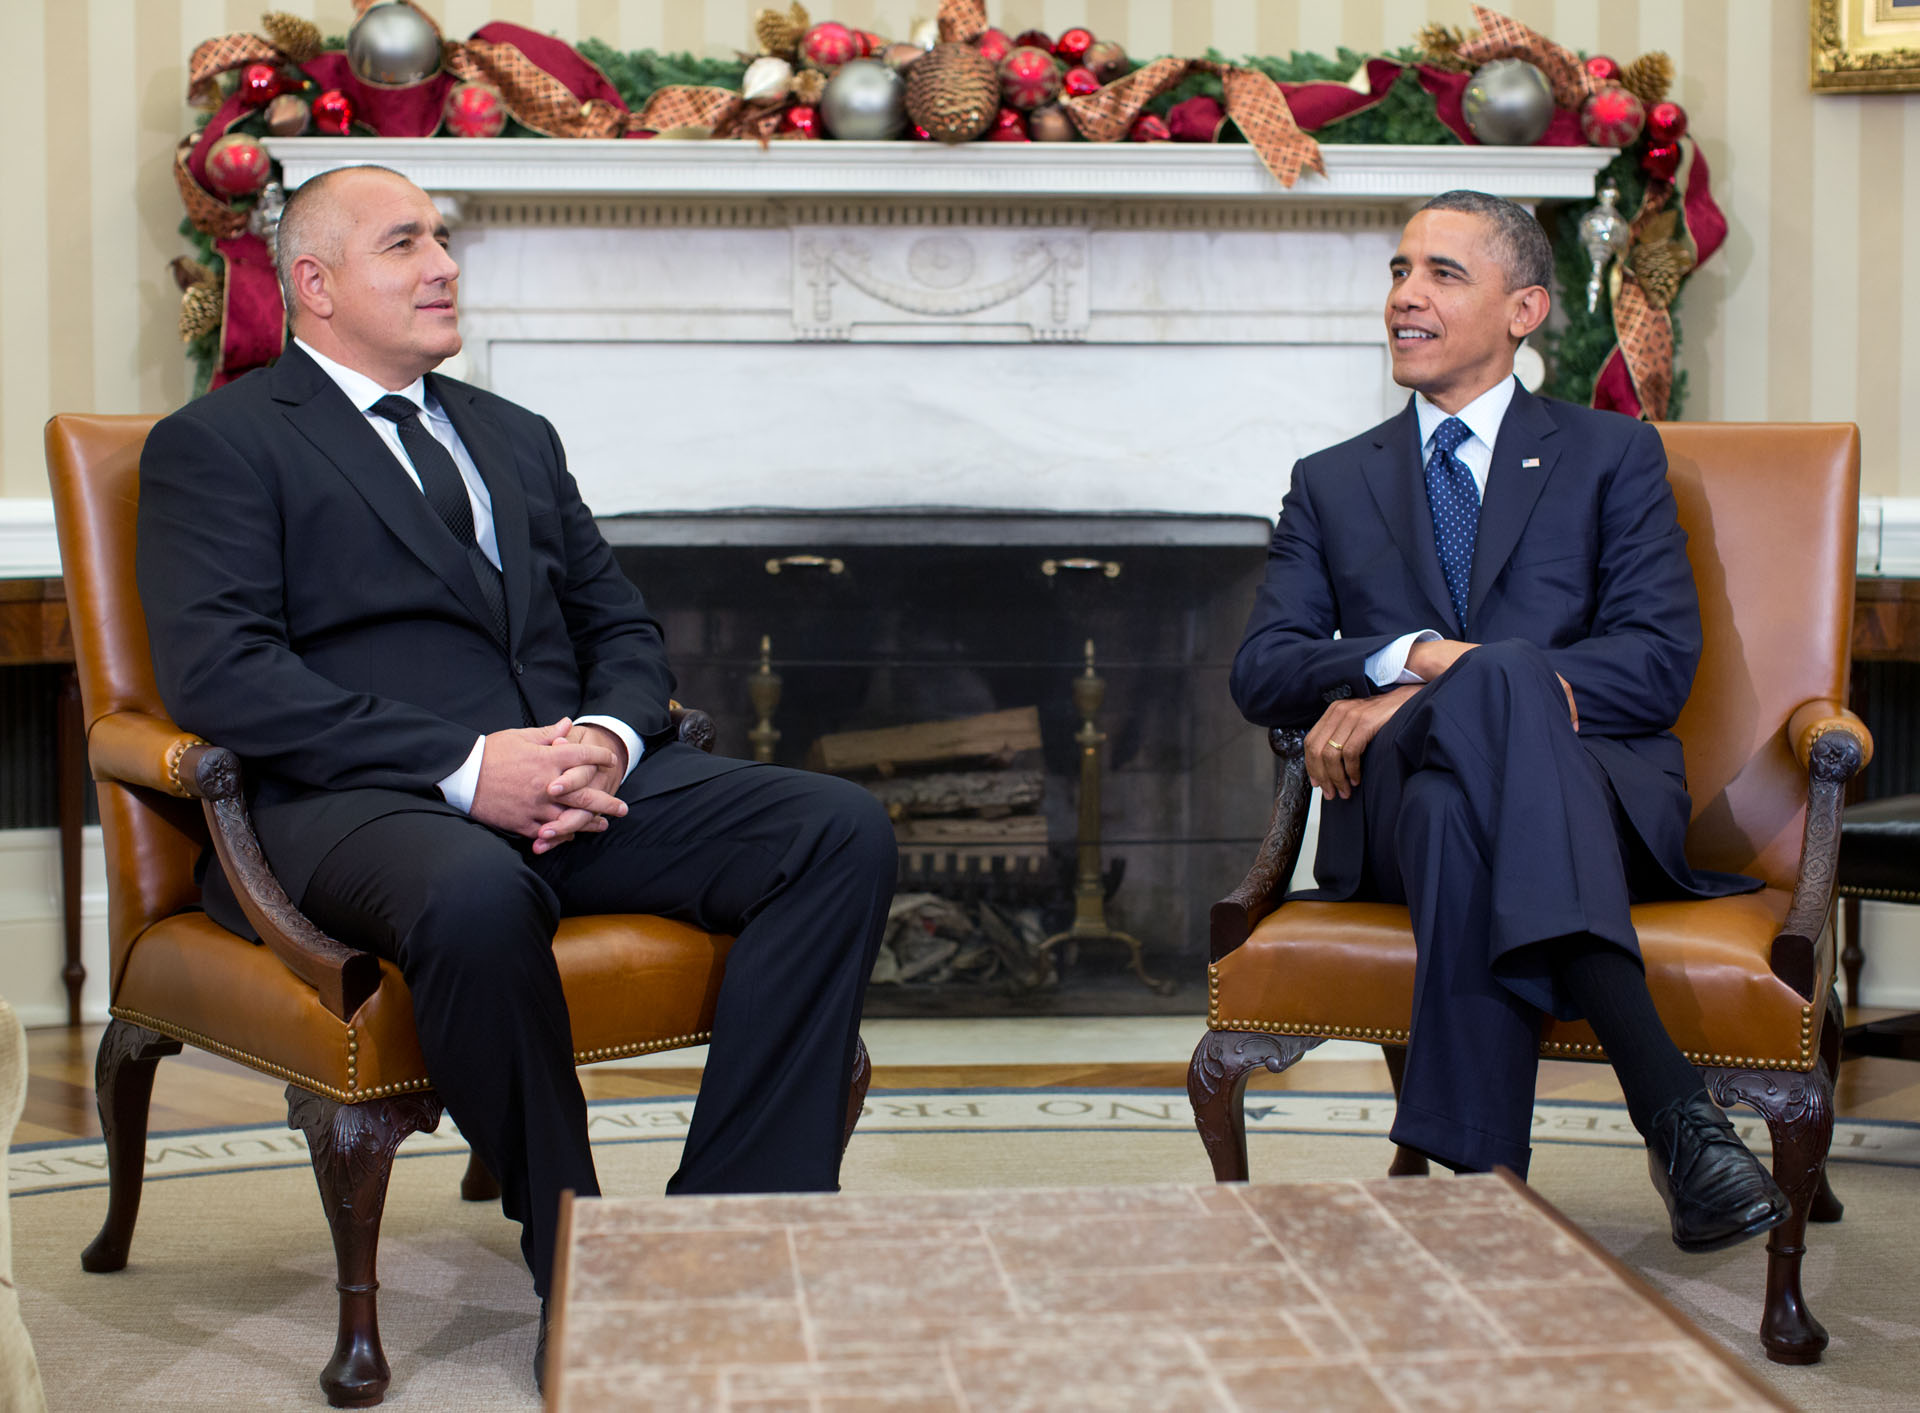 President Obama meets with Prime Minister Boyko Borissov of Bulgaria in the Oval Office, Dec. 3, 2012.